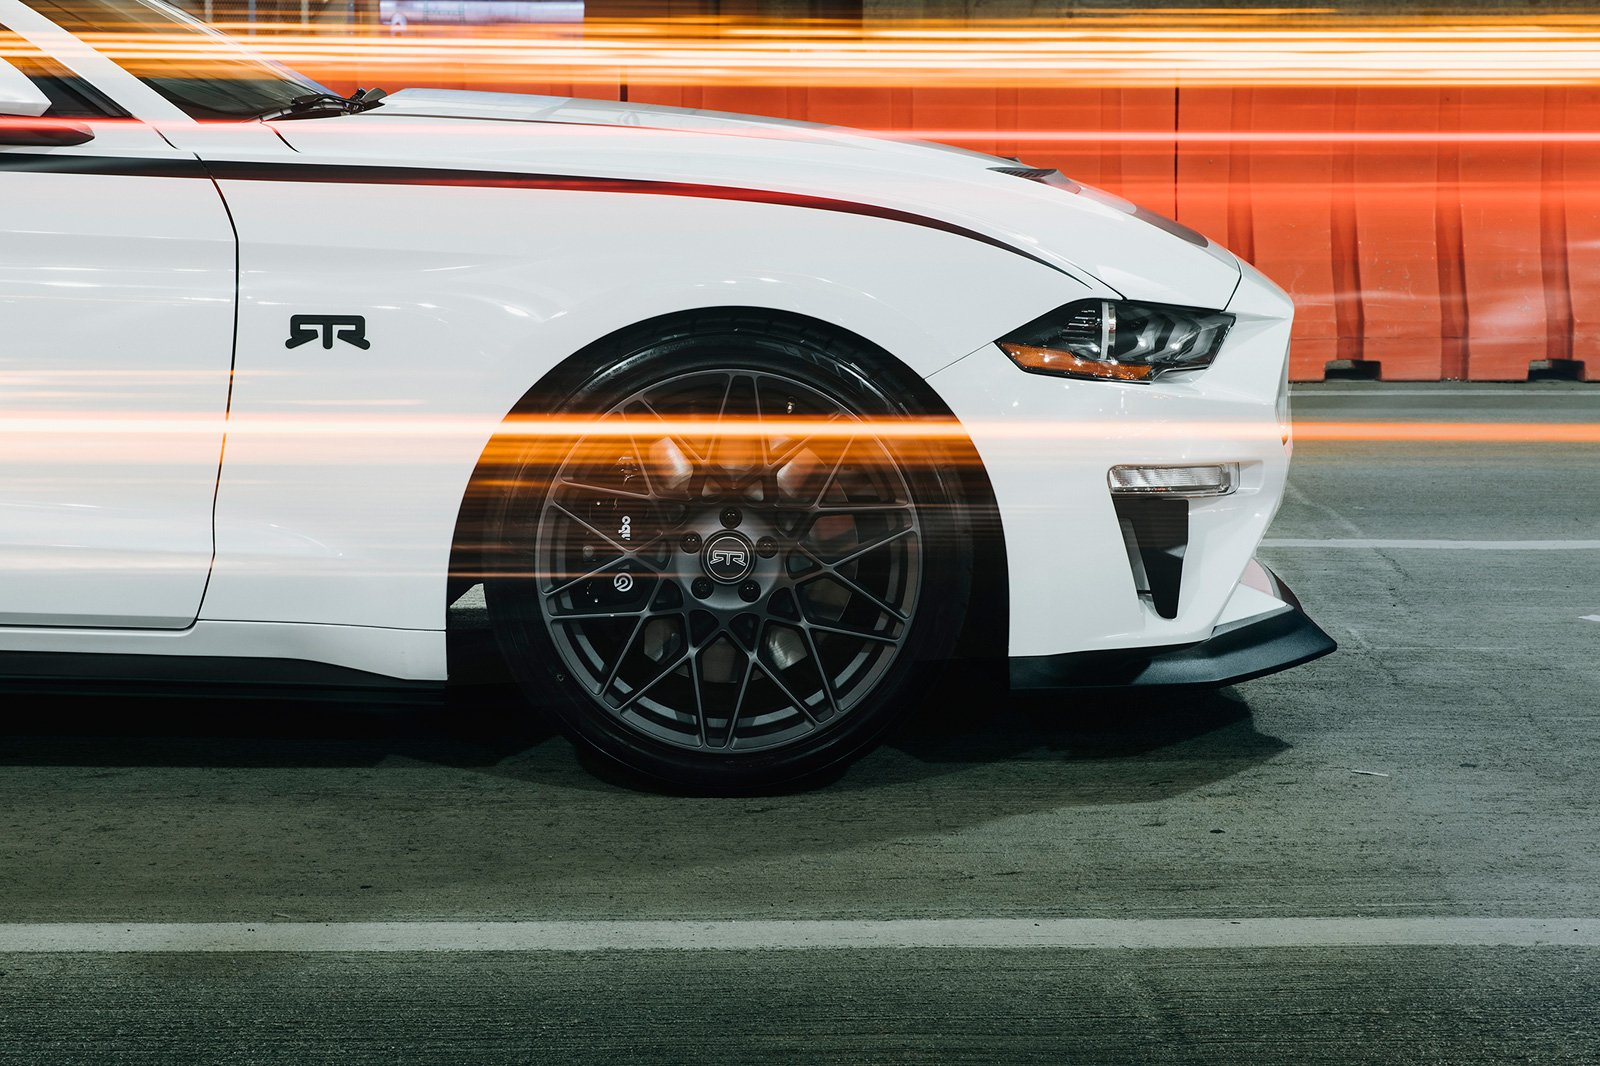 RTR Shows Off its Version of the 2018 Ford Mustang